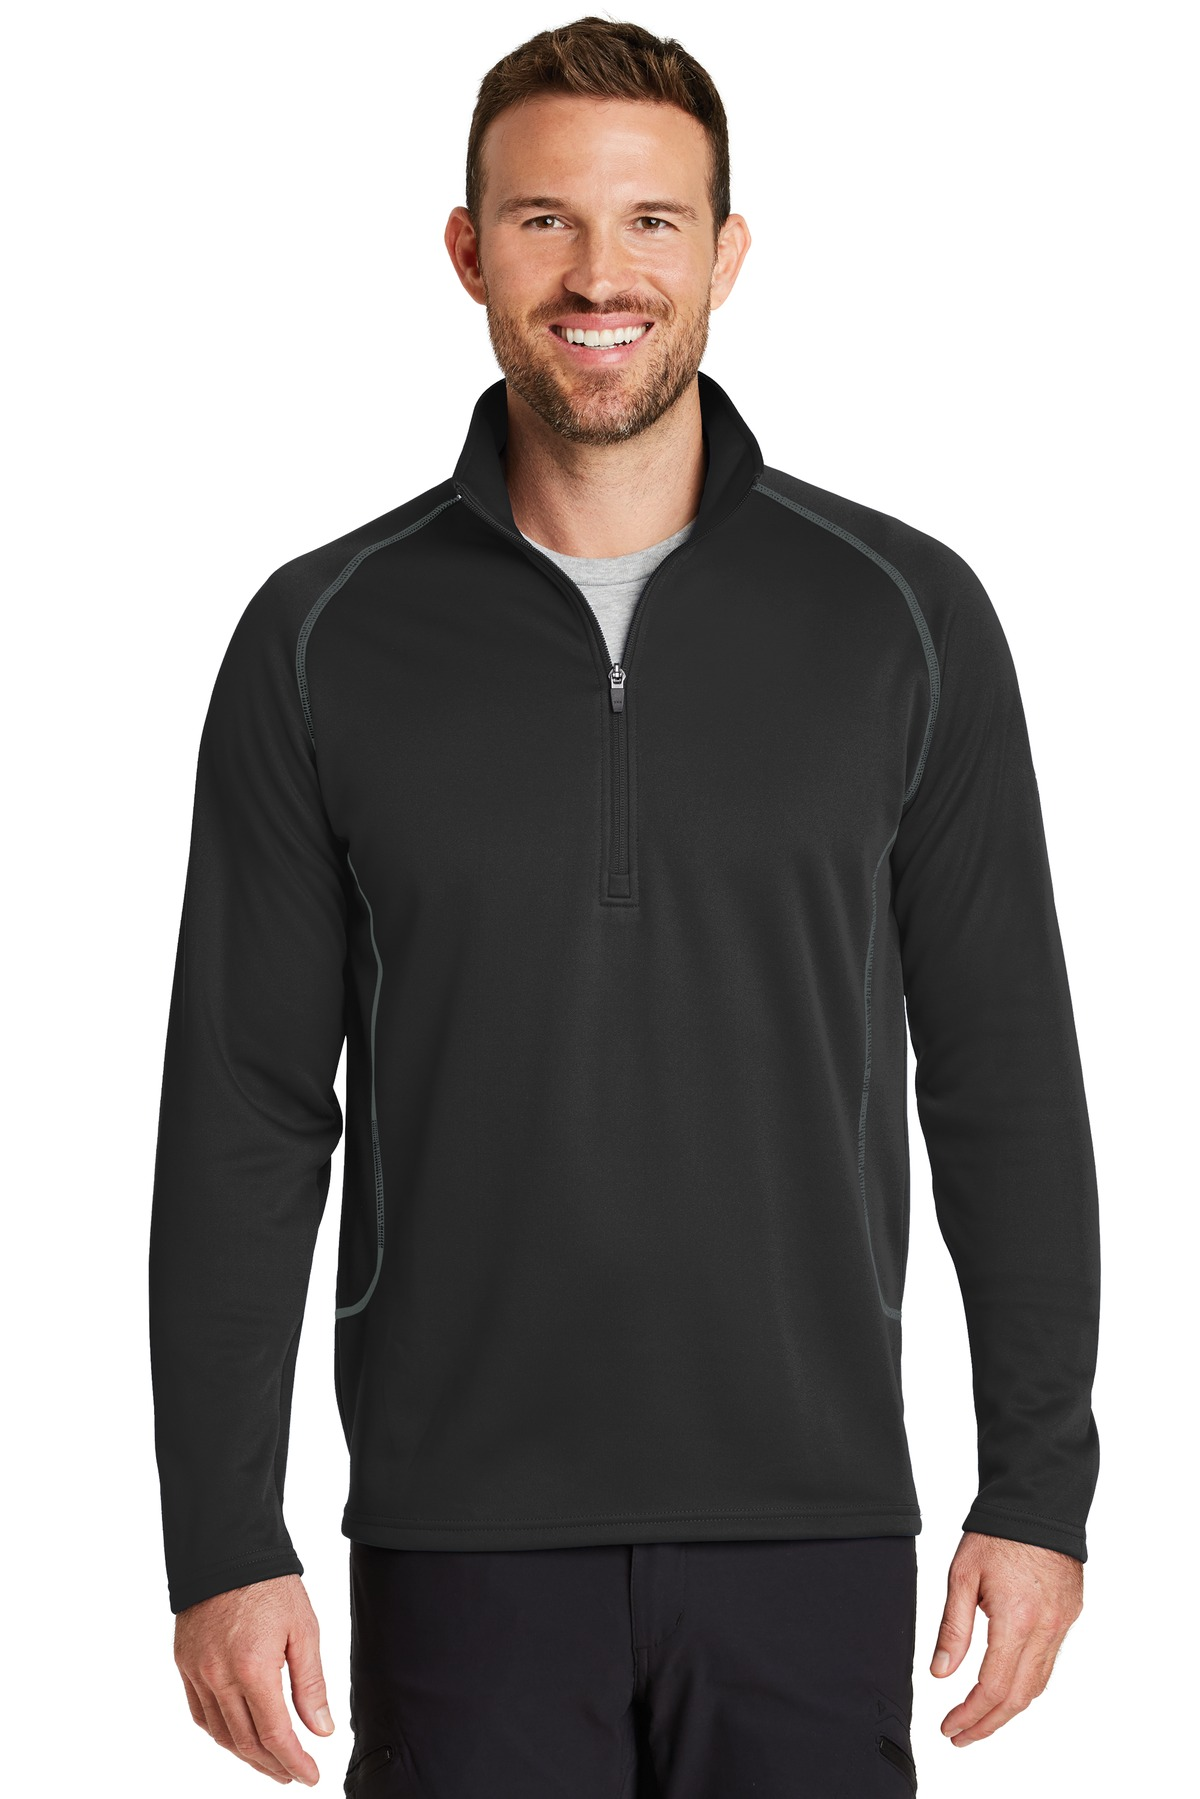 Eddie Bauer ®  Smooth Fleece Base Layer 1/2-Zip. EB236 - Black